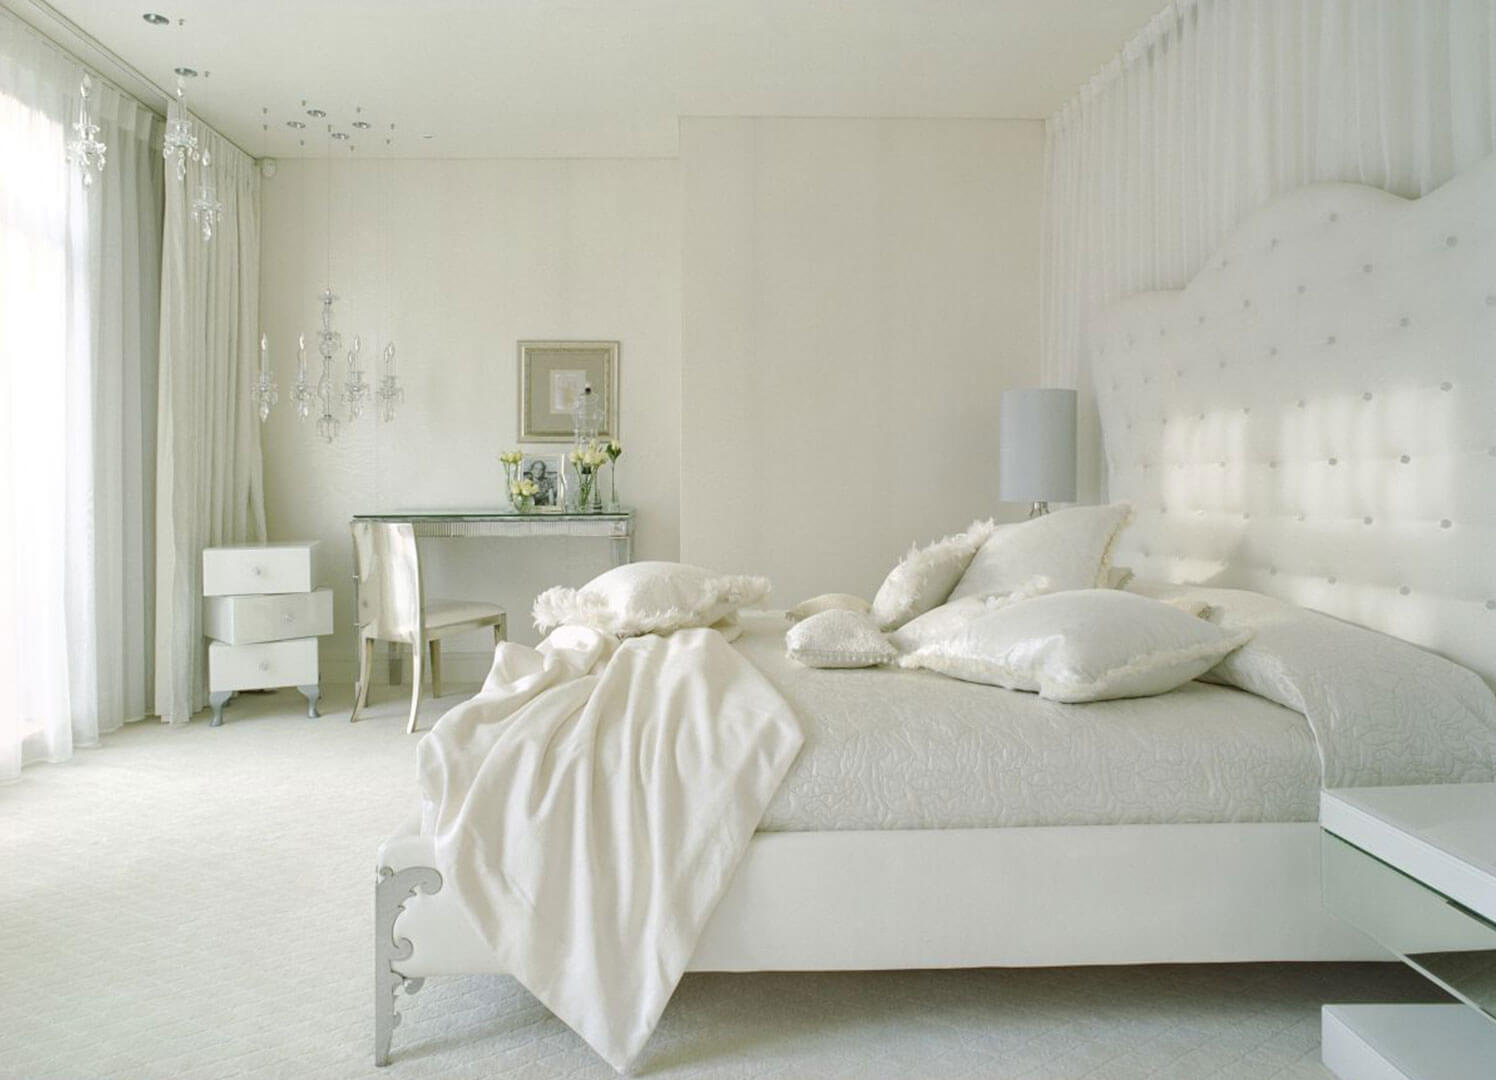 Peachy 132 Bedroom Ideas And Designs Photo Gallery Stylish And Download Free Architecture Designs Scobabritishbridgeorg